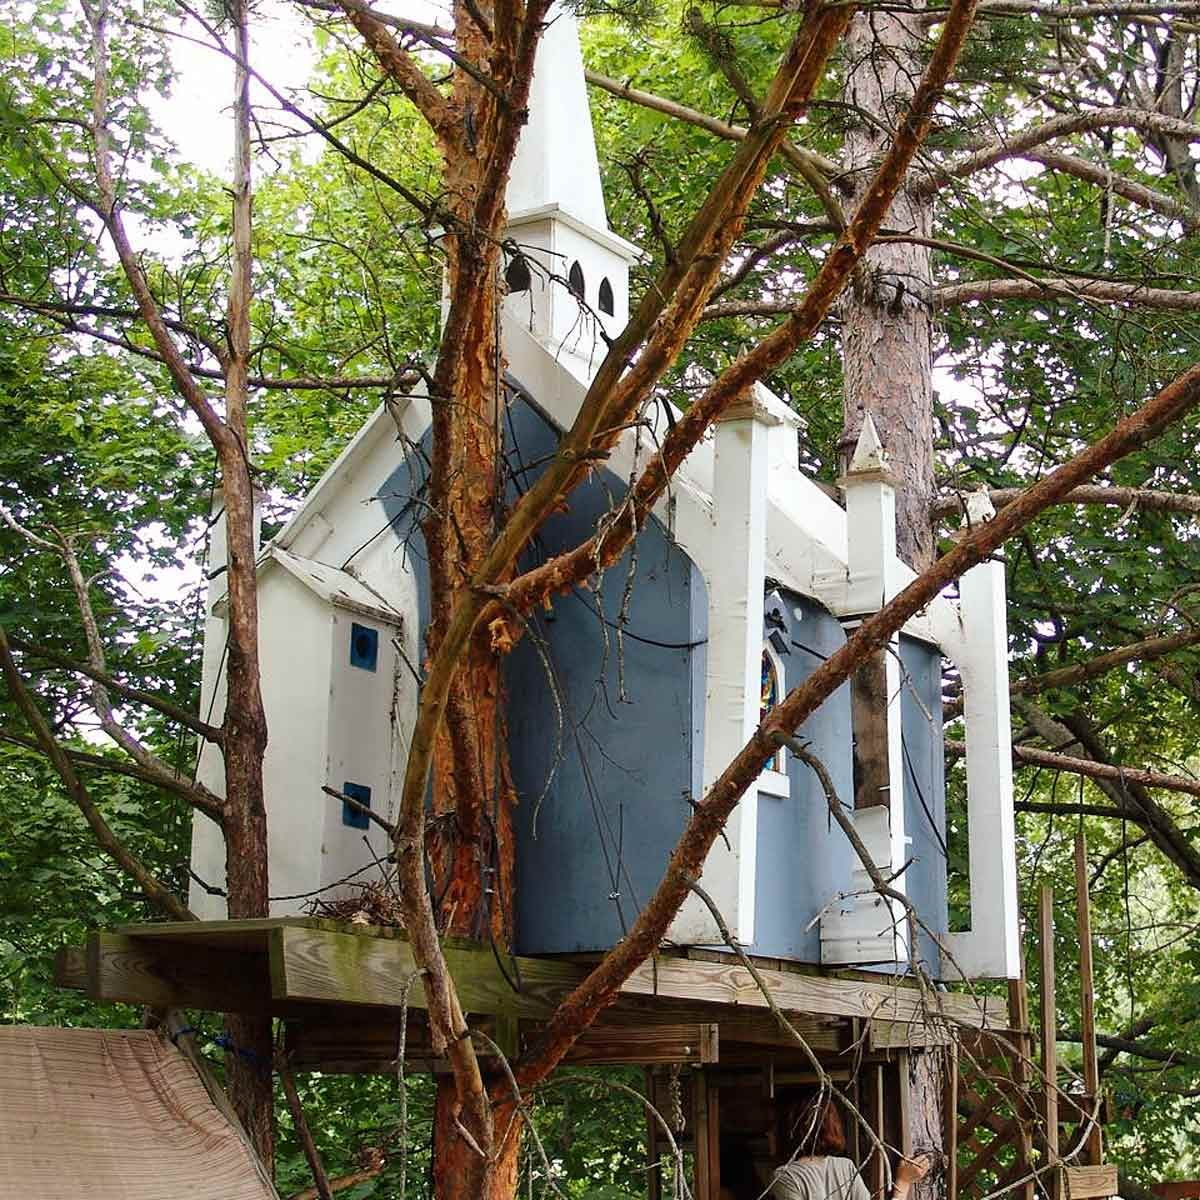 DIY Treehouse Building Tip 1: Site considerations